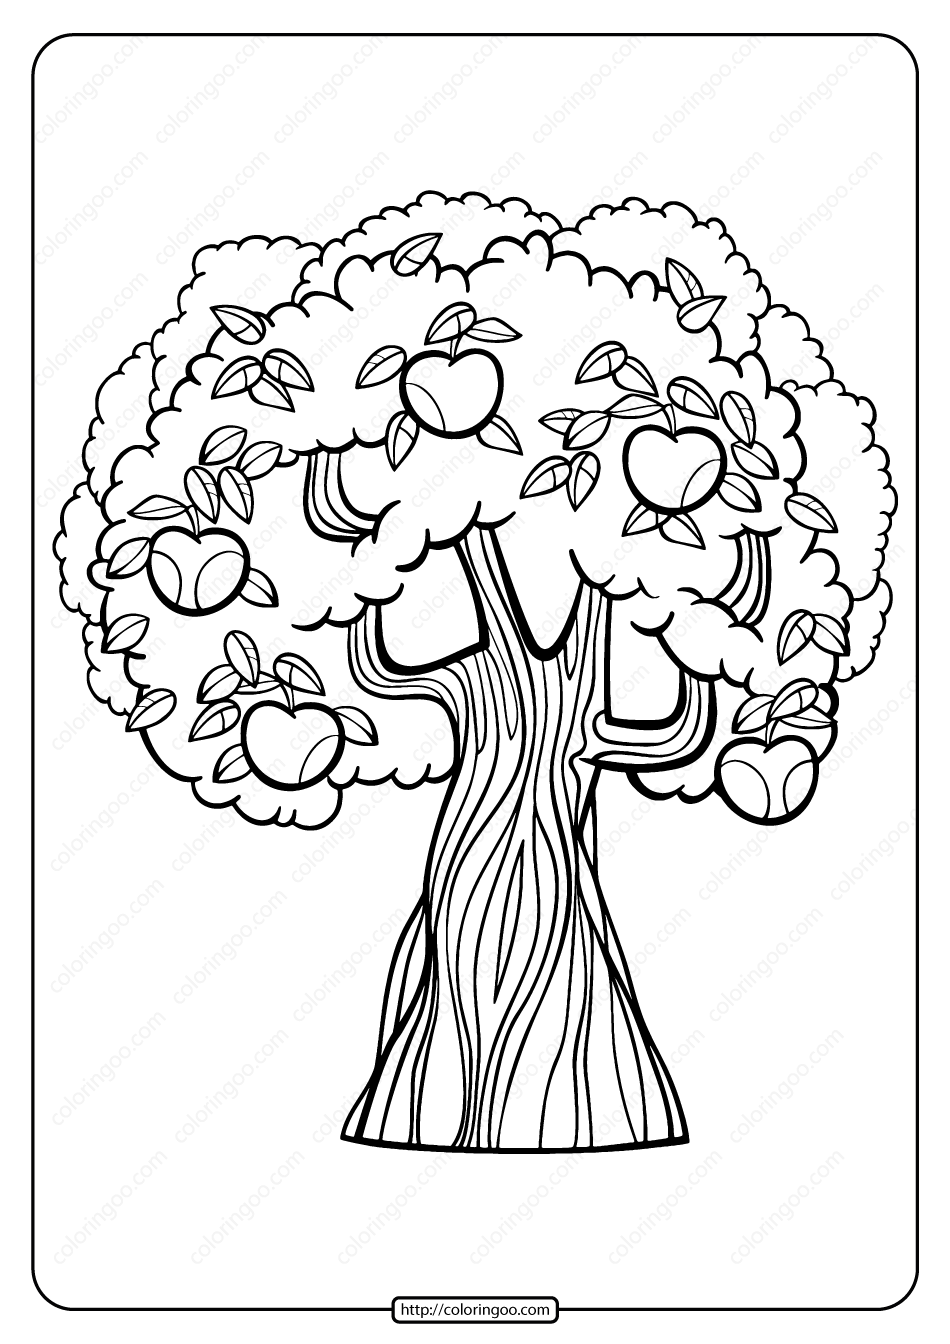 Printable Apple Tree Pdf Coloring Page Tree Coloring Page Witch Coloring Pages Fall Coloring Pages